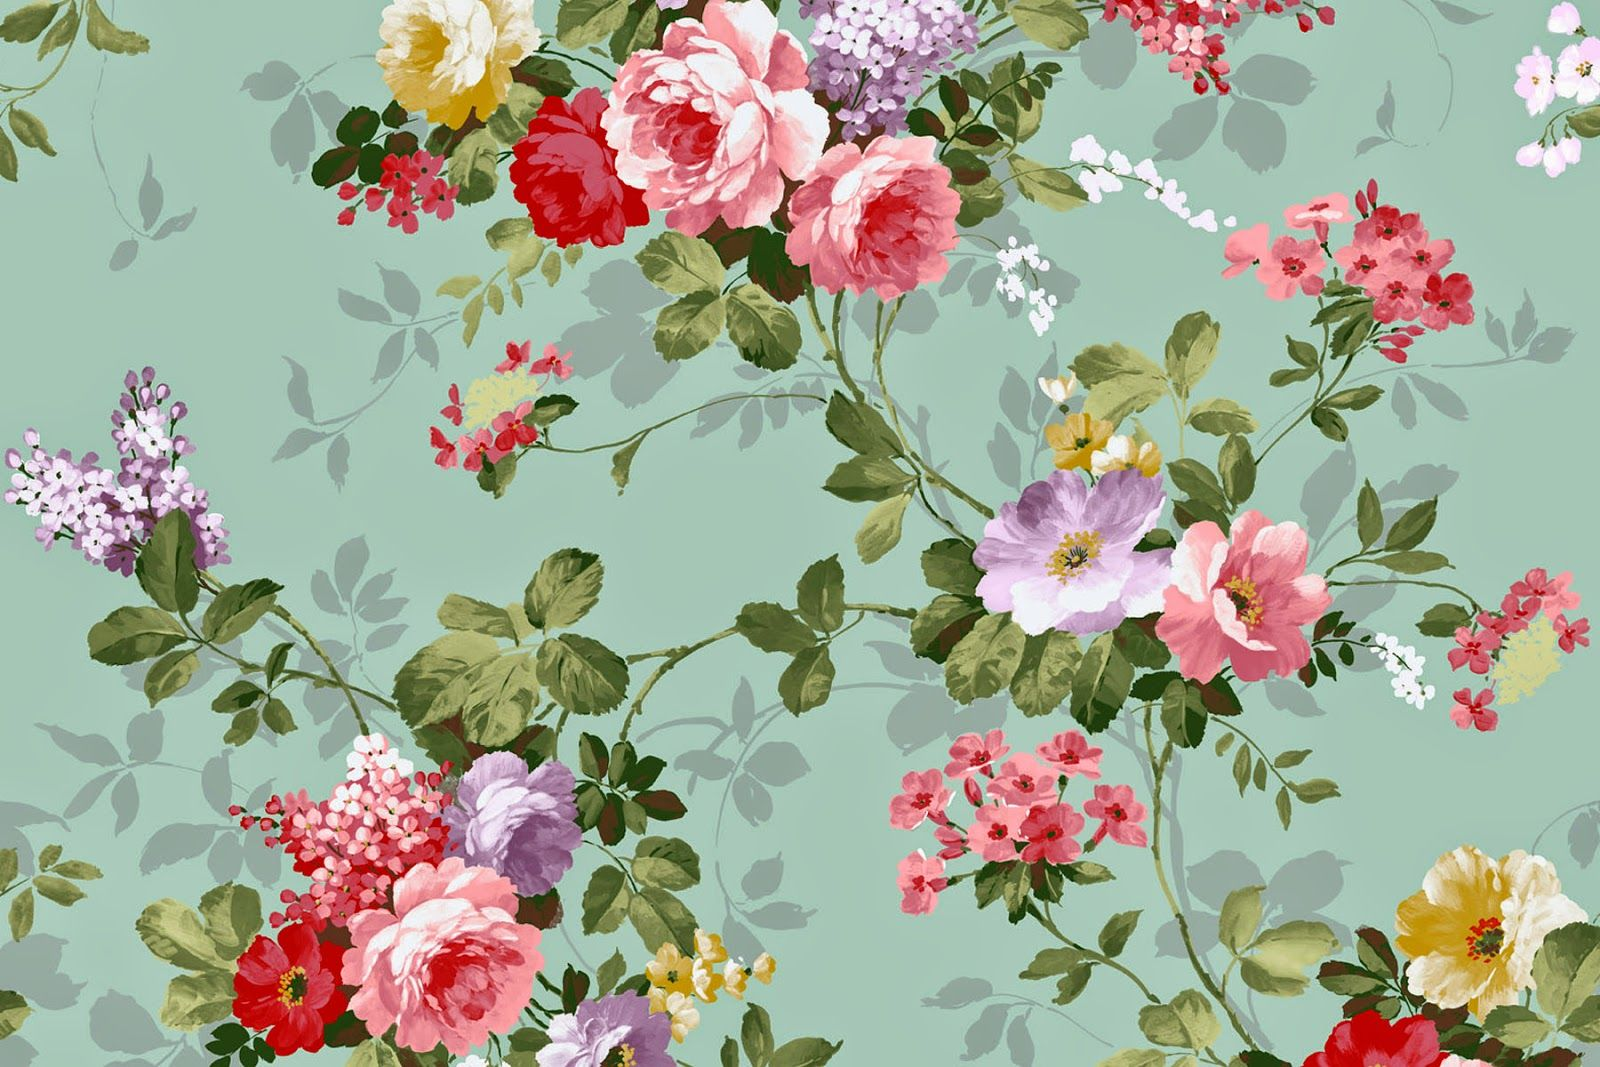 Vintage Floral Wallpapers Top Free Vintage Floral Backgrounds